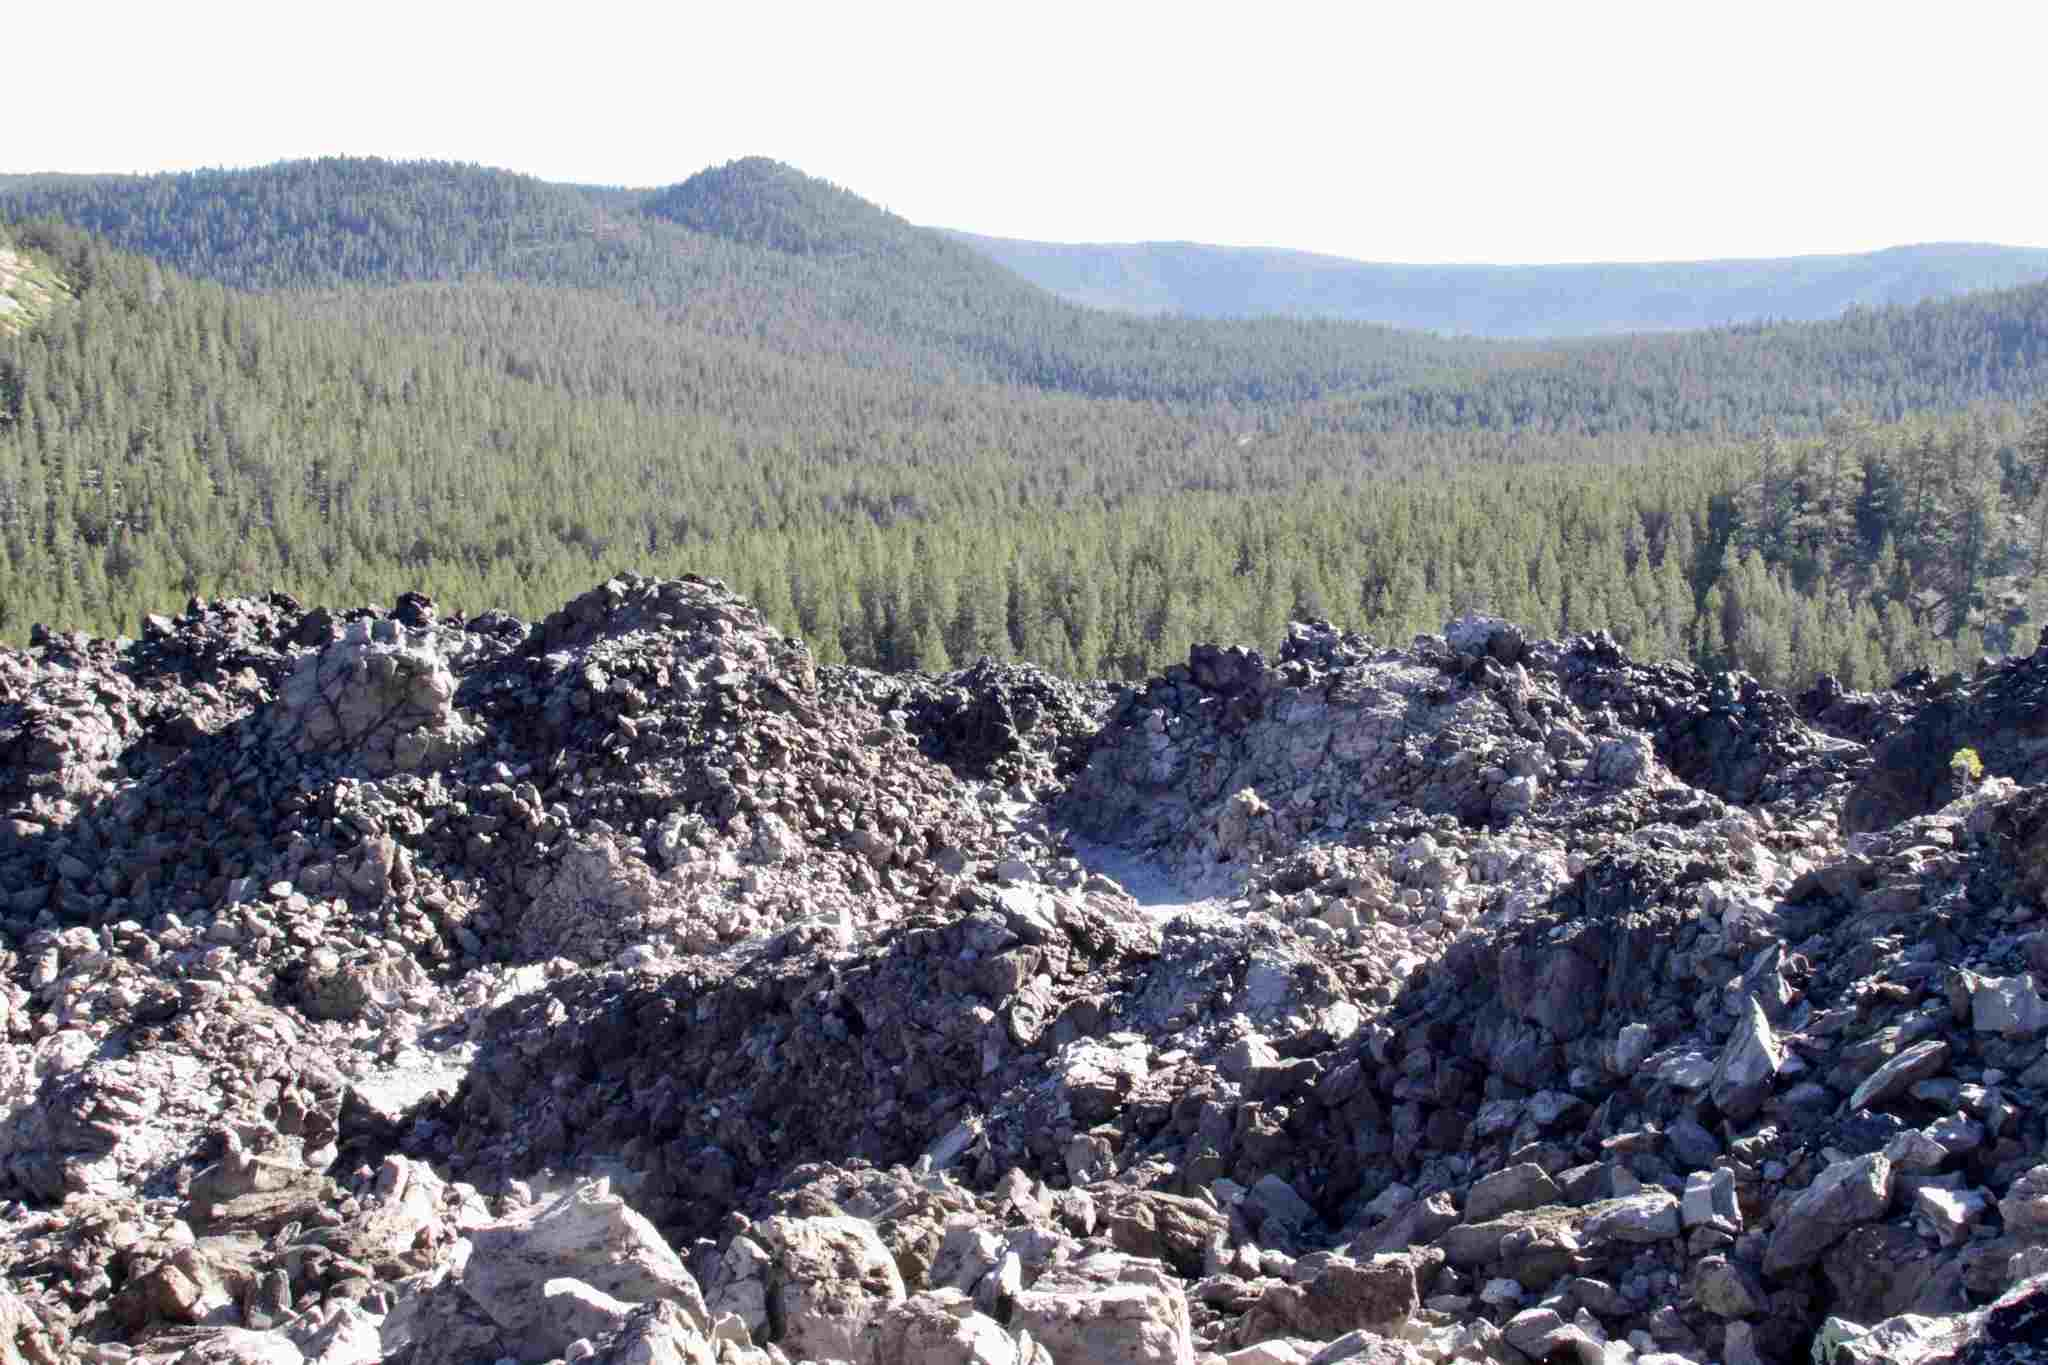 Large obsidian flow on a bright, sunny day, with rolling hills in the background.